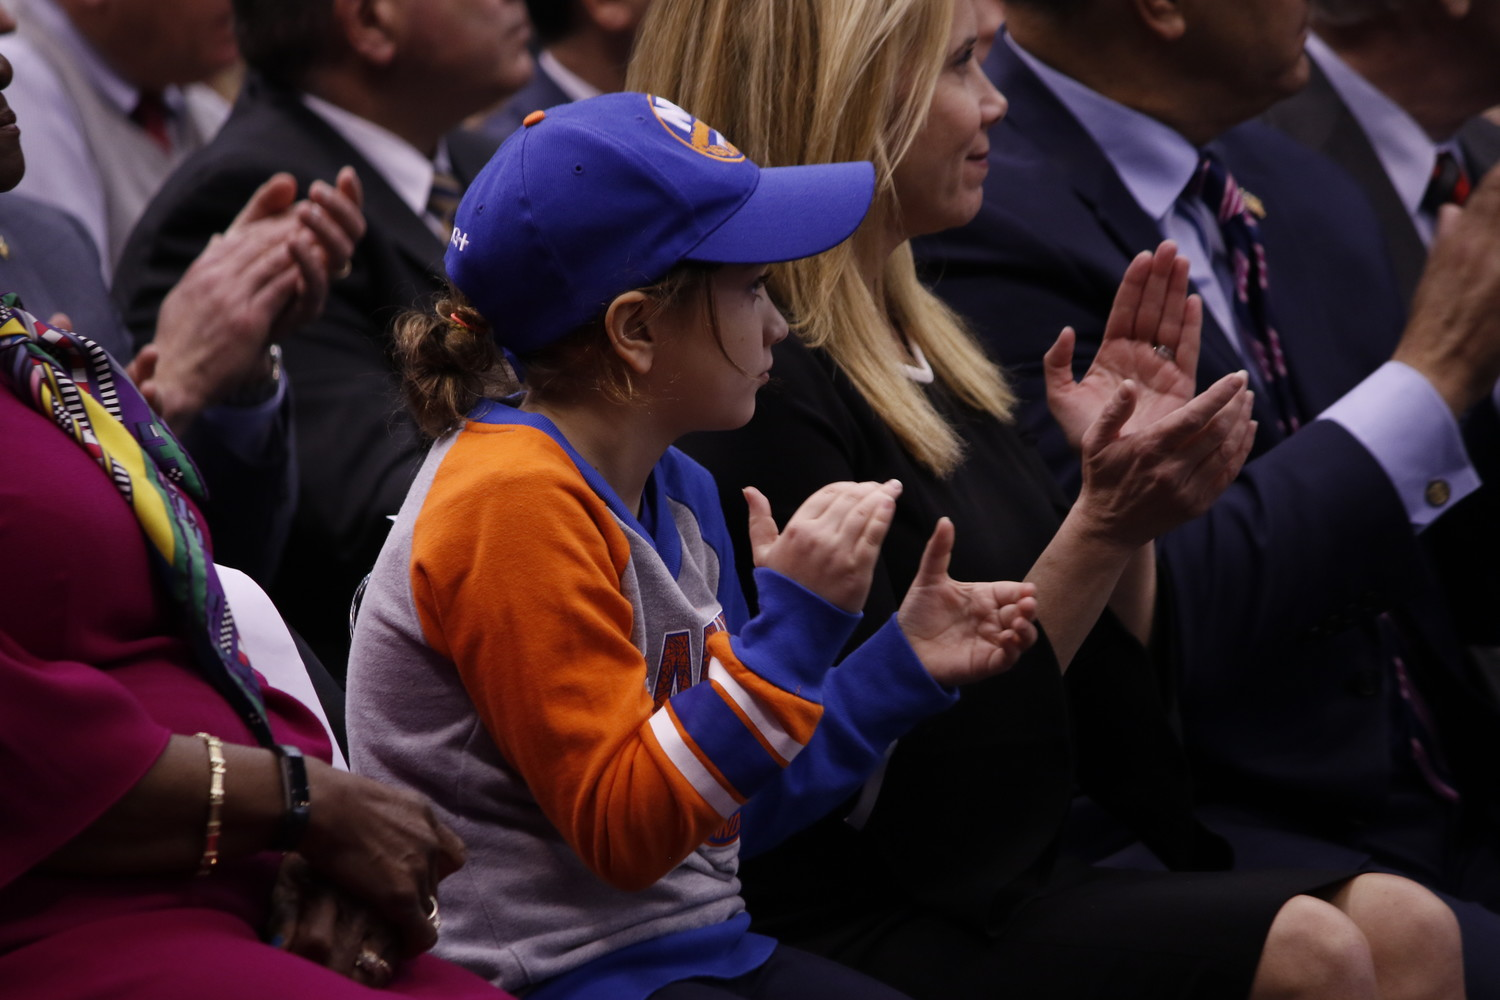 Hempstead Supervisor Laura Gillen attended with her daughter Austen Finnegan, 9, who said that she was excited to see the Islanders compete at the Coliseum.